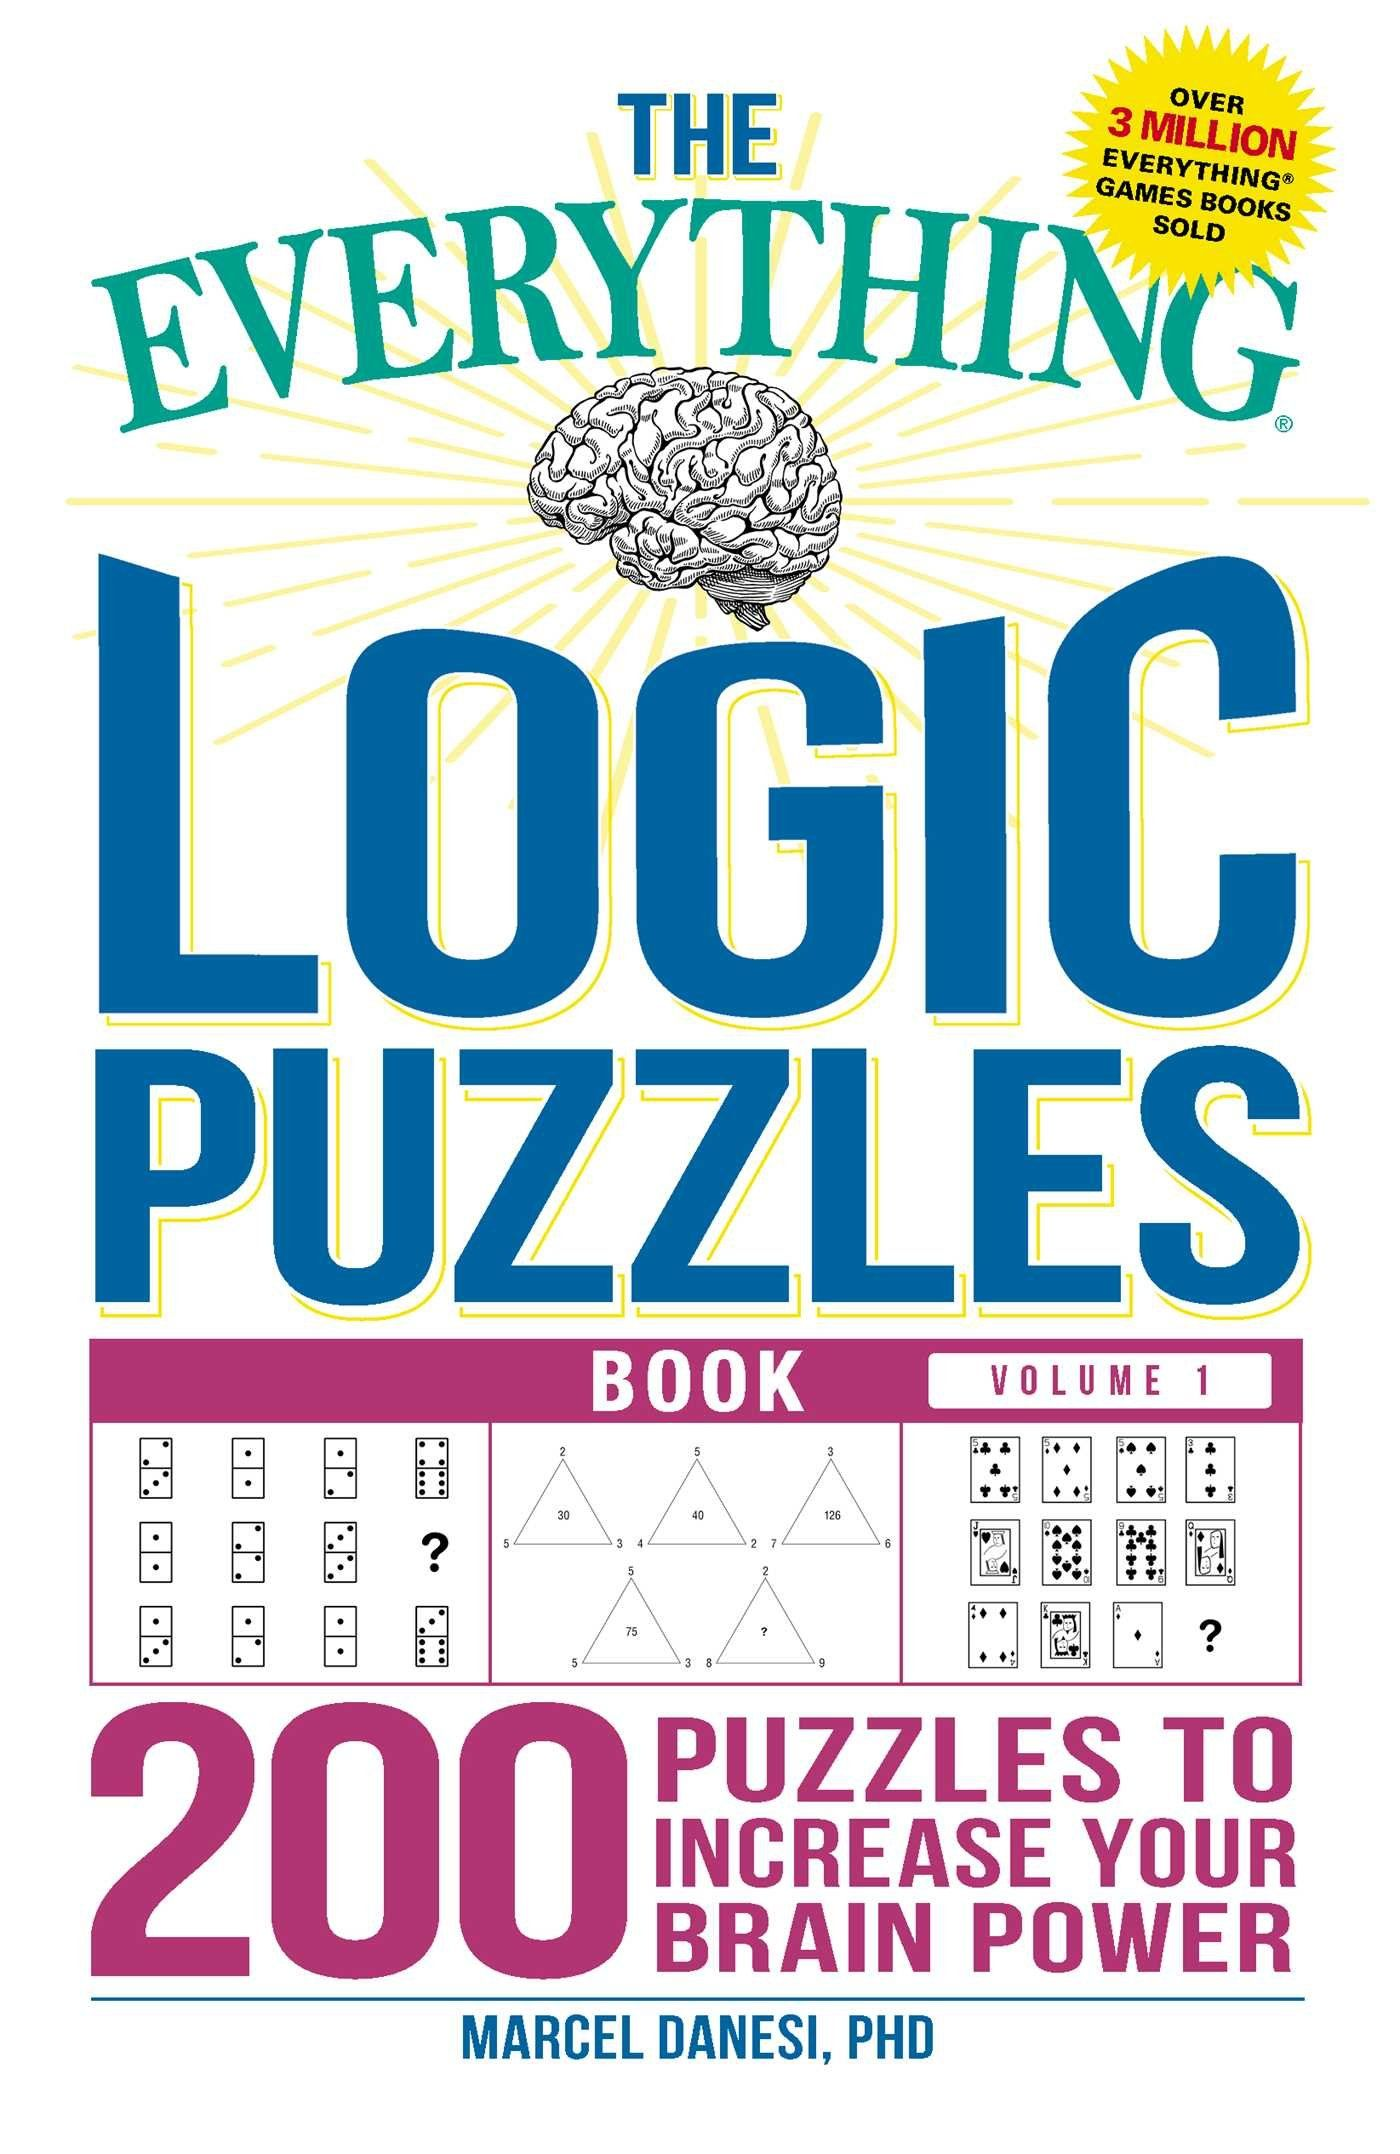 The Everything Logic Puzzles Book Volume 1 200 Puzzles to Increase Your Brain Power Paperback – July 11 2017